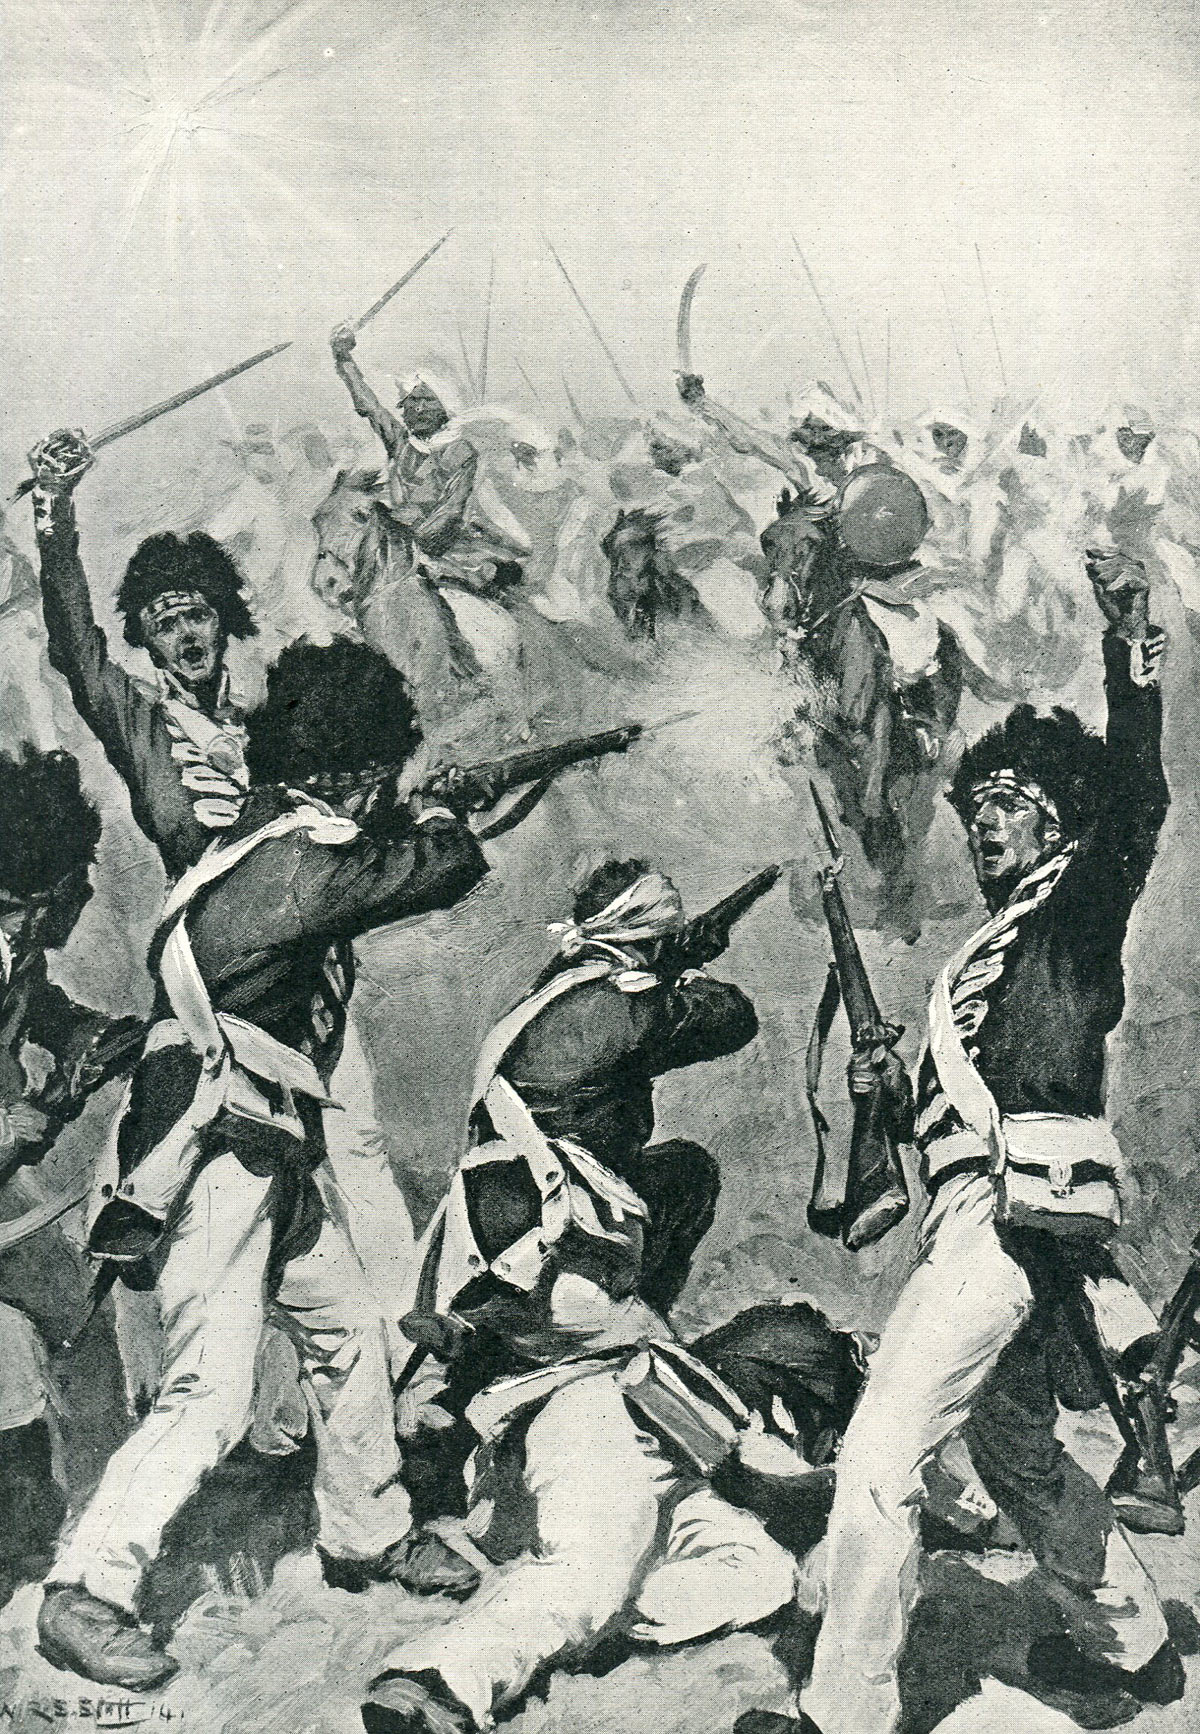 74th Highlanders attacked by the Mahratta Cavalry at the Battle of Assaye on 23rd September 1803 during the Second Mahratta War in India: picture by W.R.S. Stott